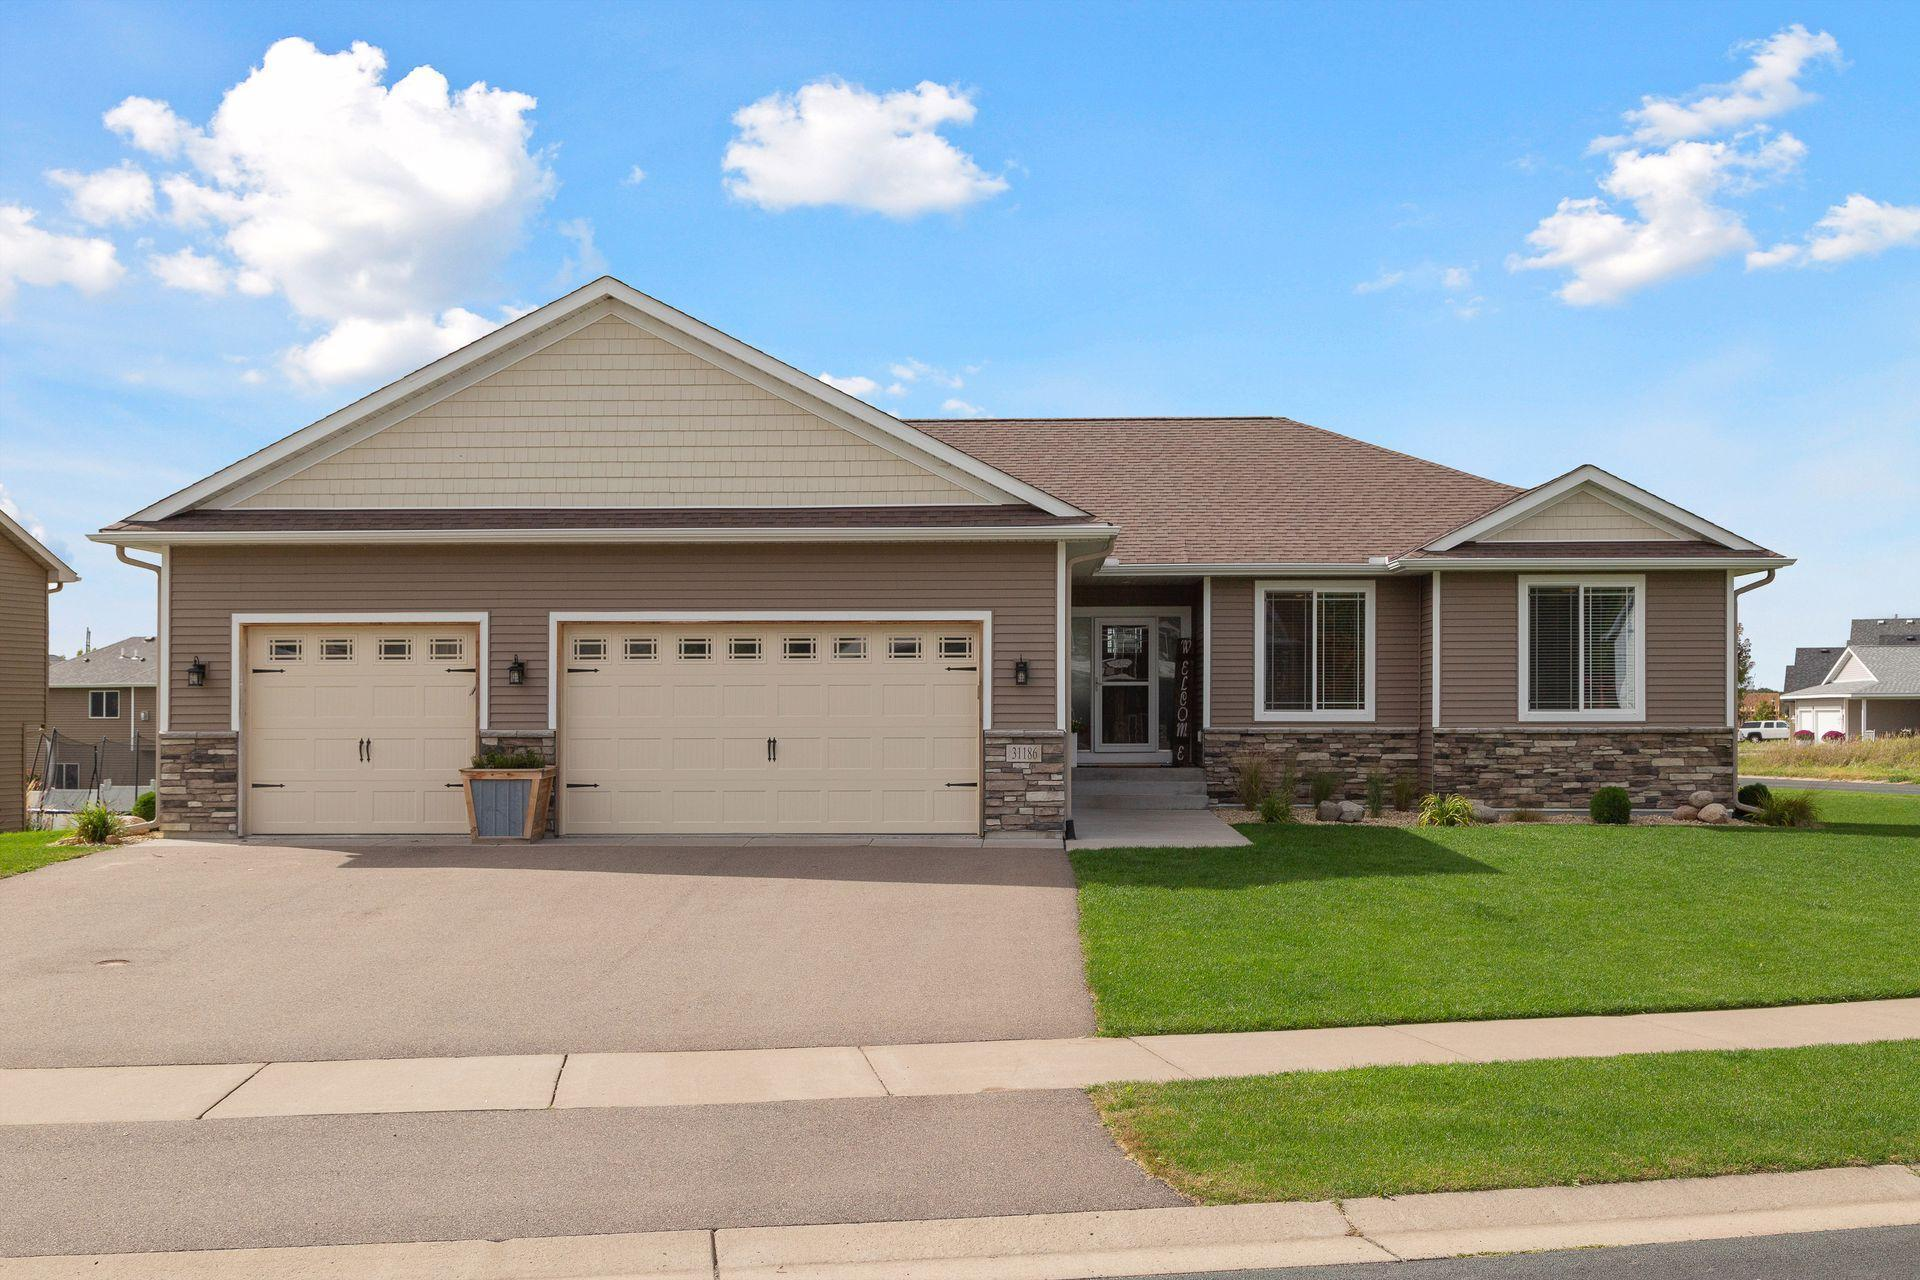 31186 Algonquin Trail Property Photo - Chisago City, MN real estate listing